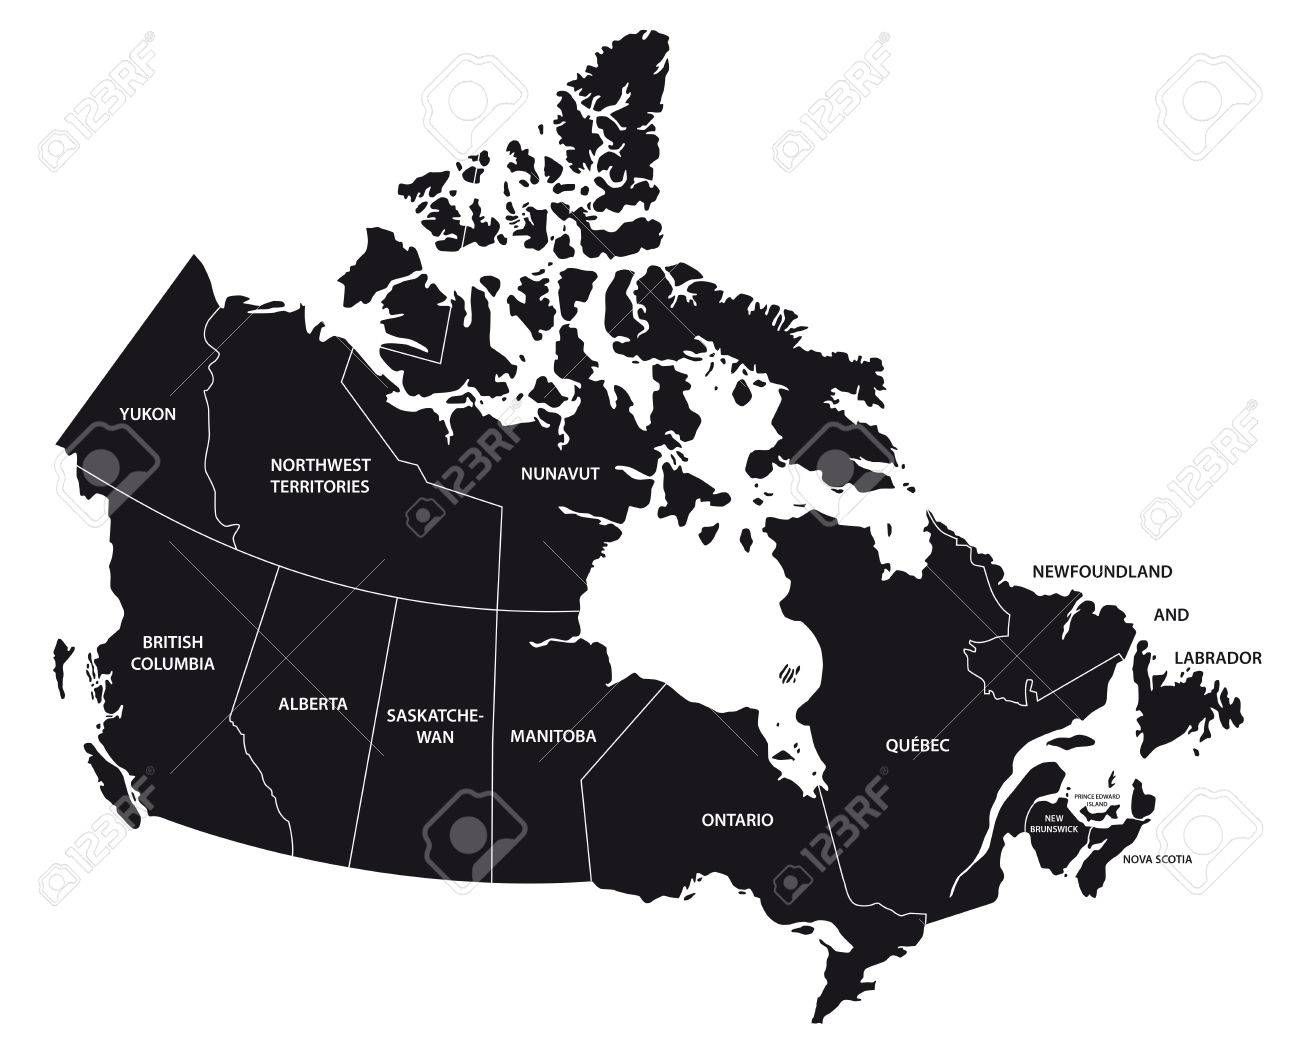 Canada Administrative Map In Black And White Royalty Free Cliparts